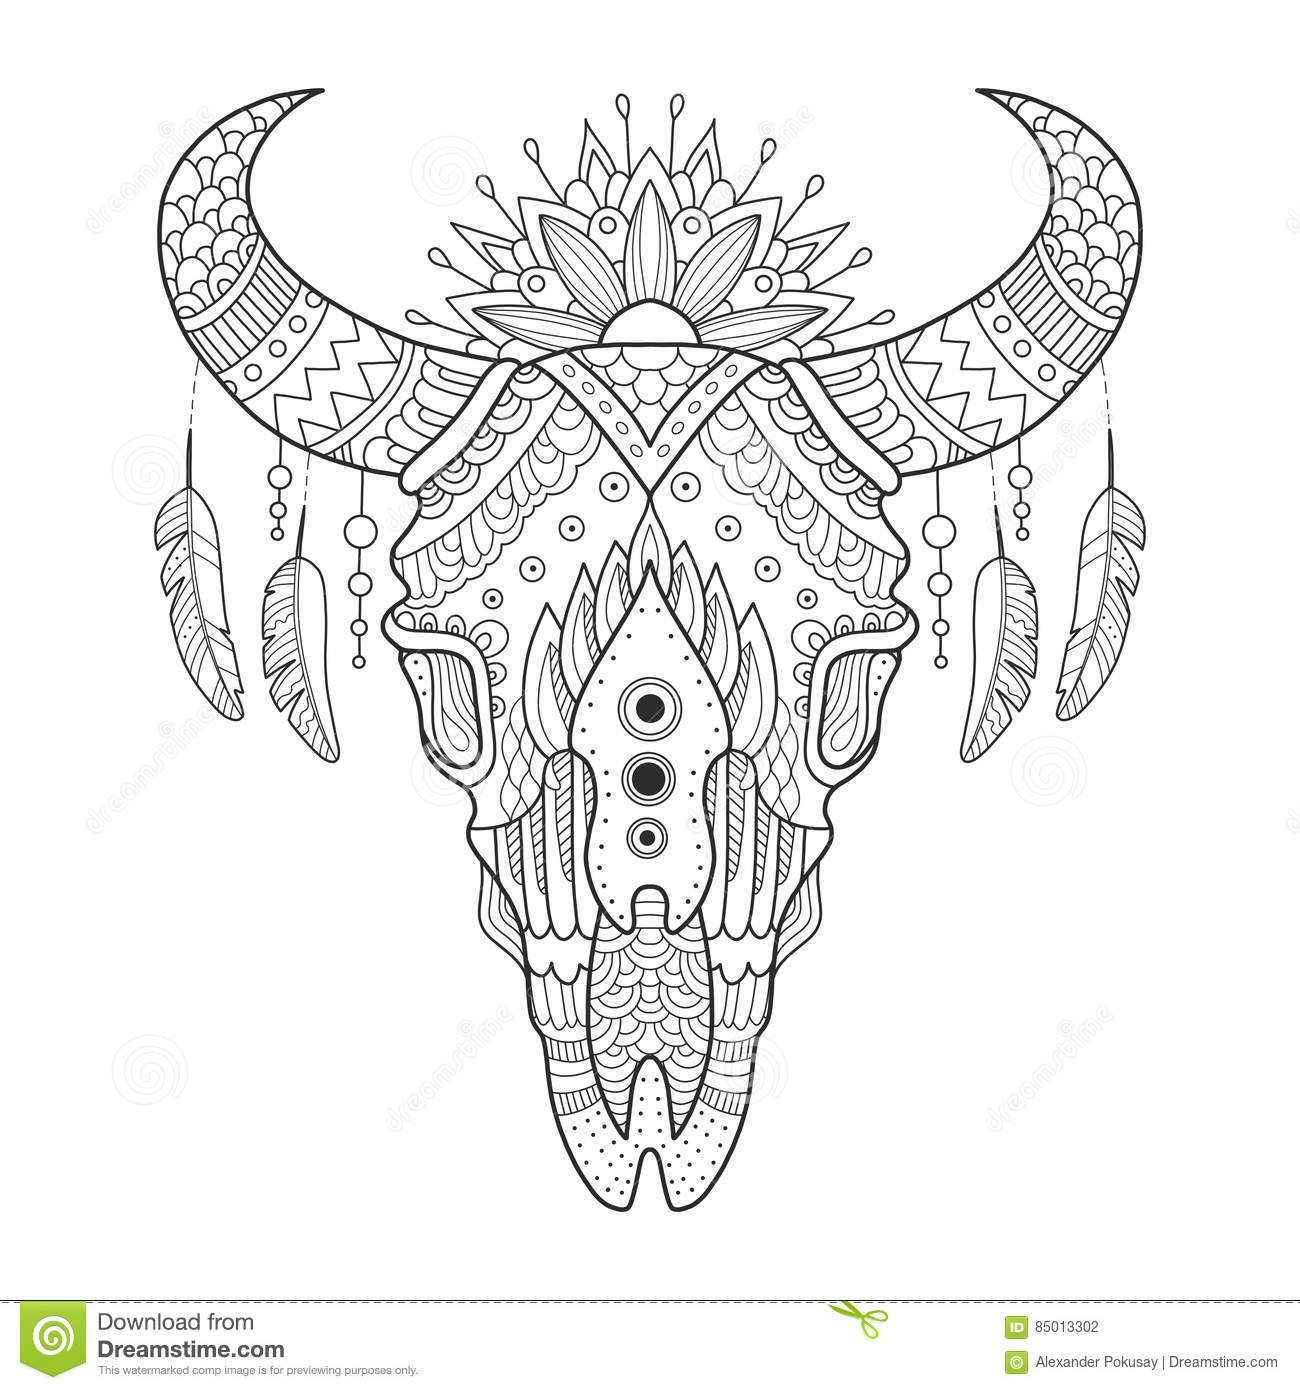 Cow Skull Coloring Book Vector Illustration Anti Stress For Adult Tattoo Stencil Black And White Lines Lace Pattern